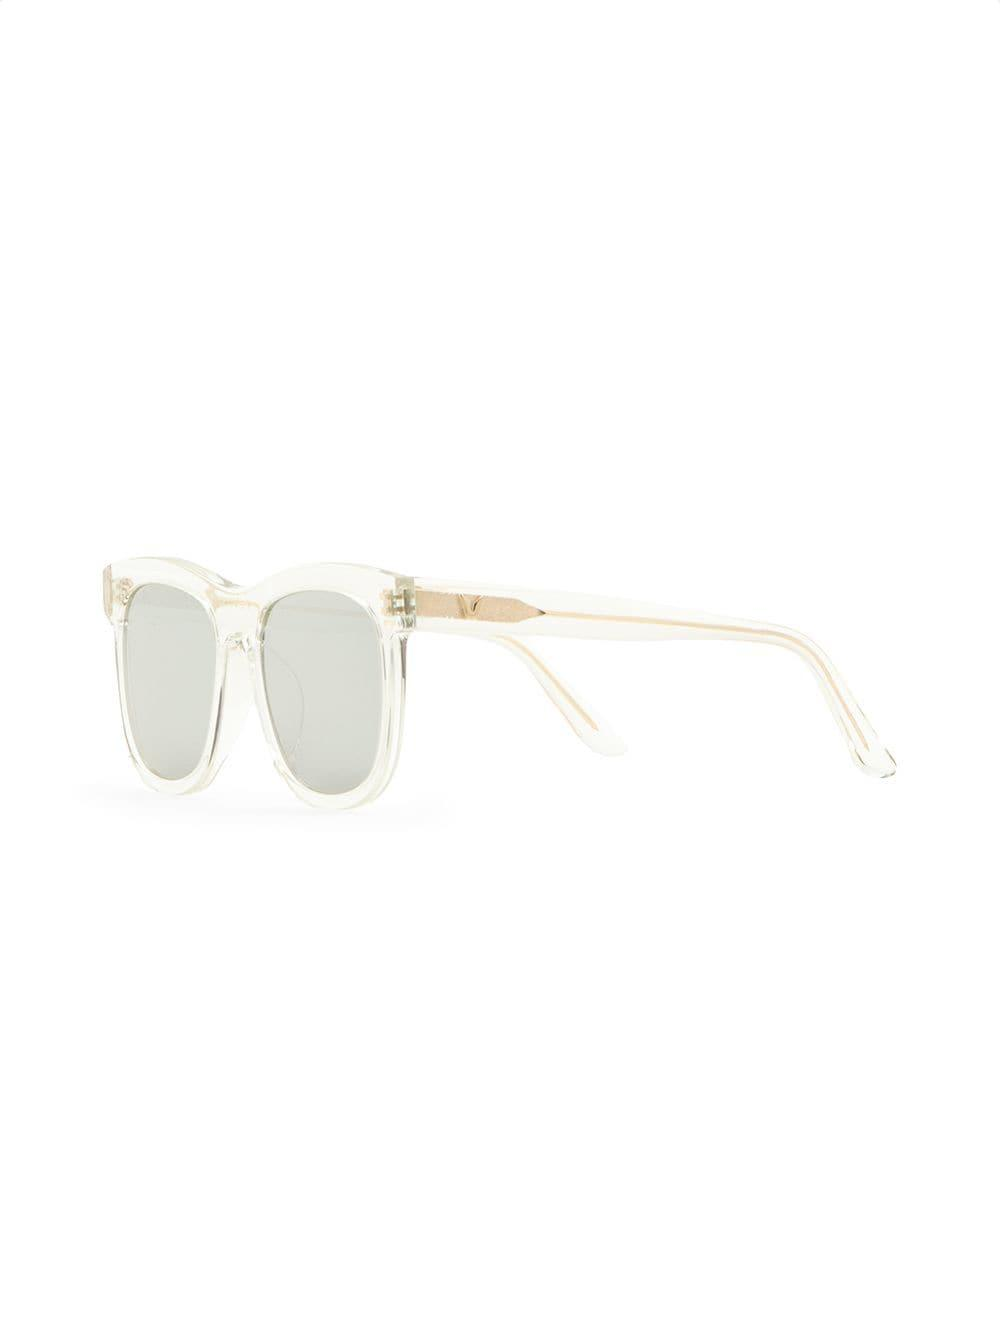 bc5c83d84fb8 Gentle Monster Z-1 032 Sunglasses in Metallic - Save 59.946236559139784% -  Lyst